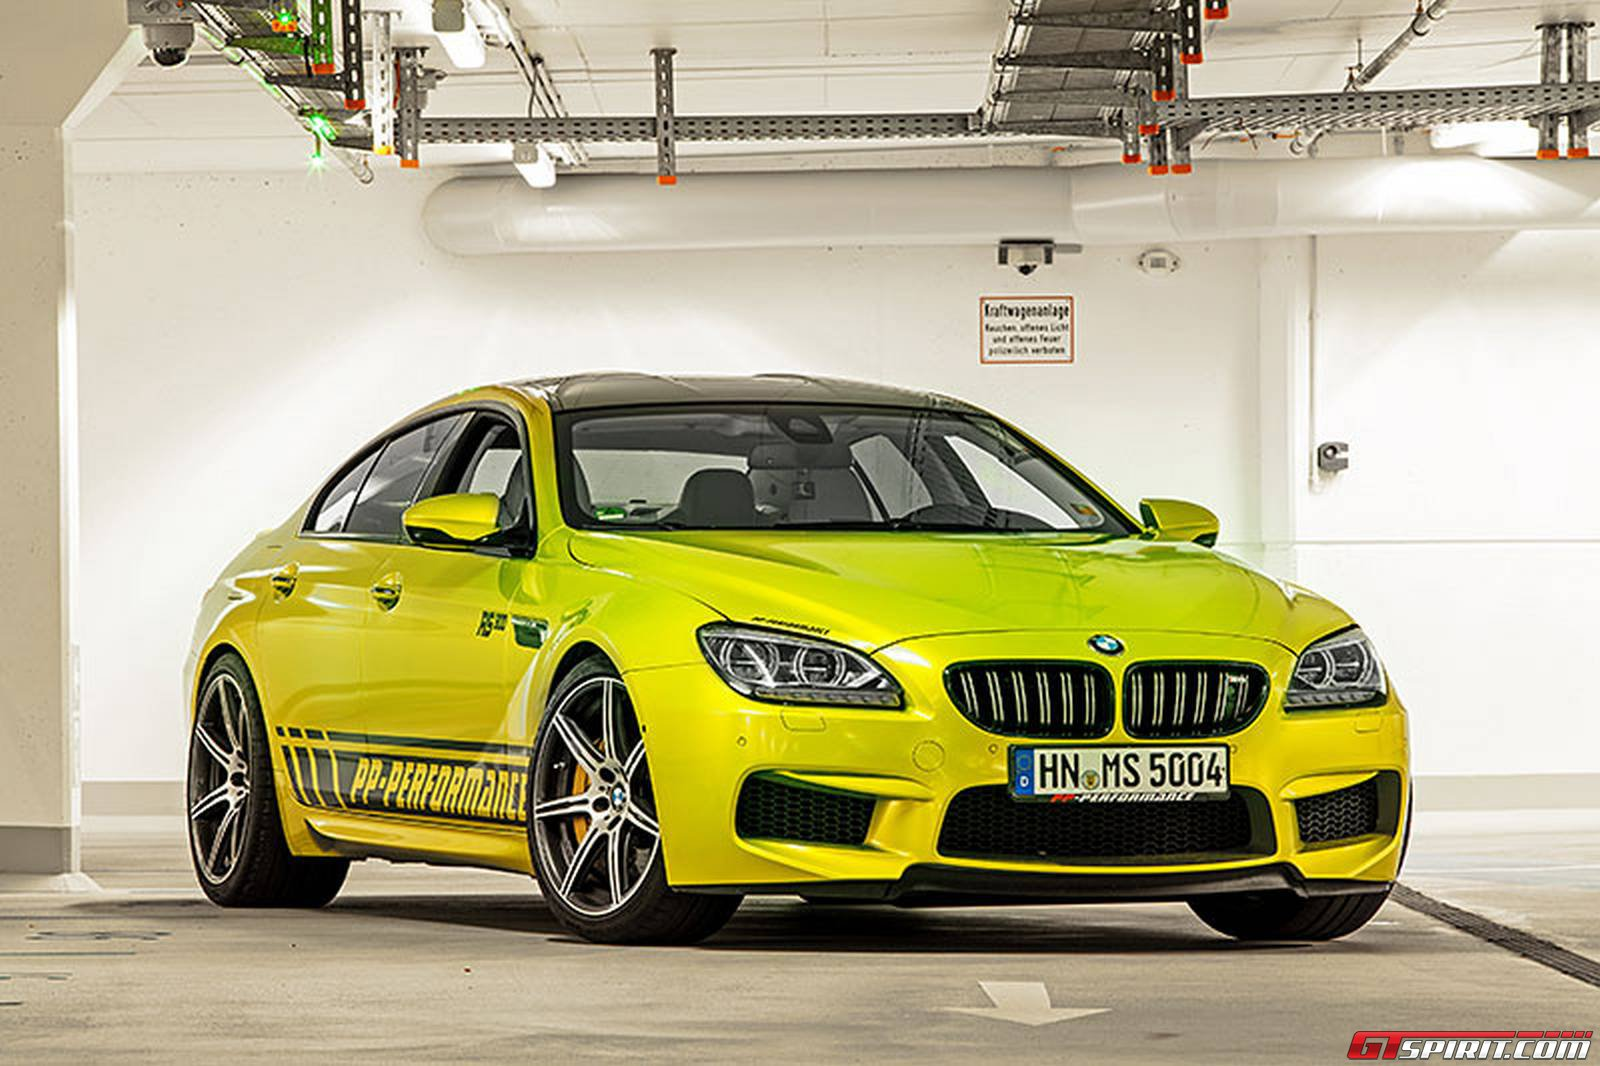 official electric lime pp performance bmw m6 rs800 gran coup gtspirit. Black Bedroom Furniture Sets. Home Design Ideas